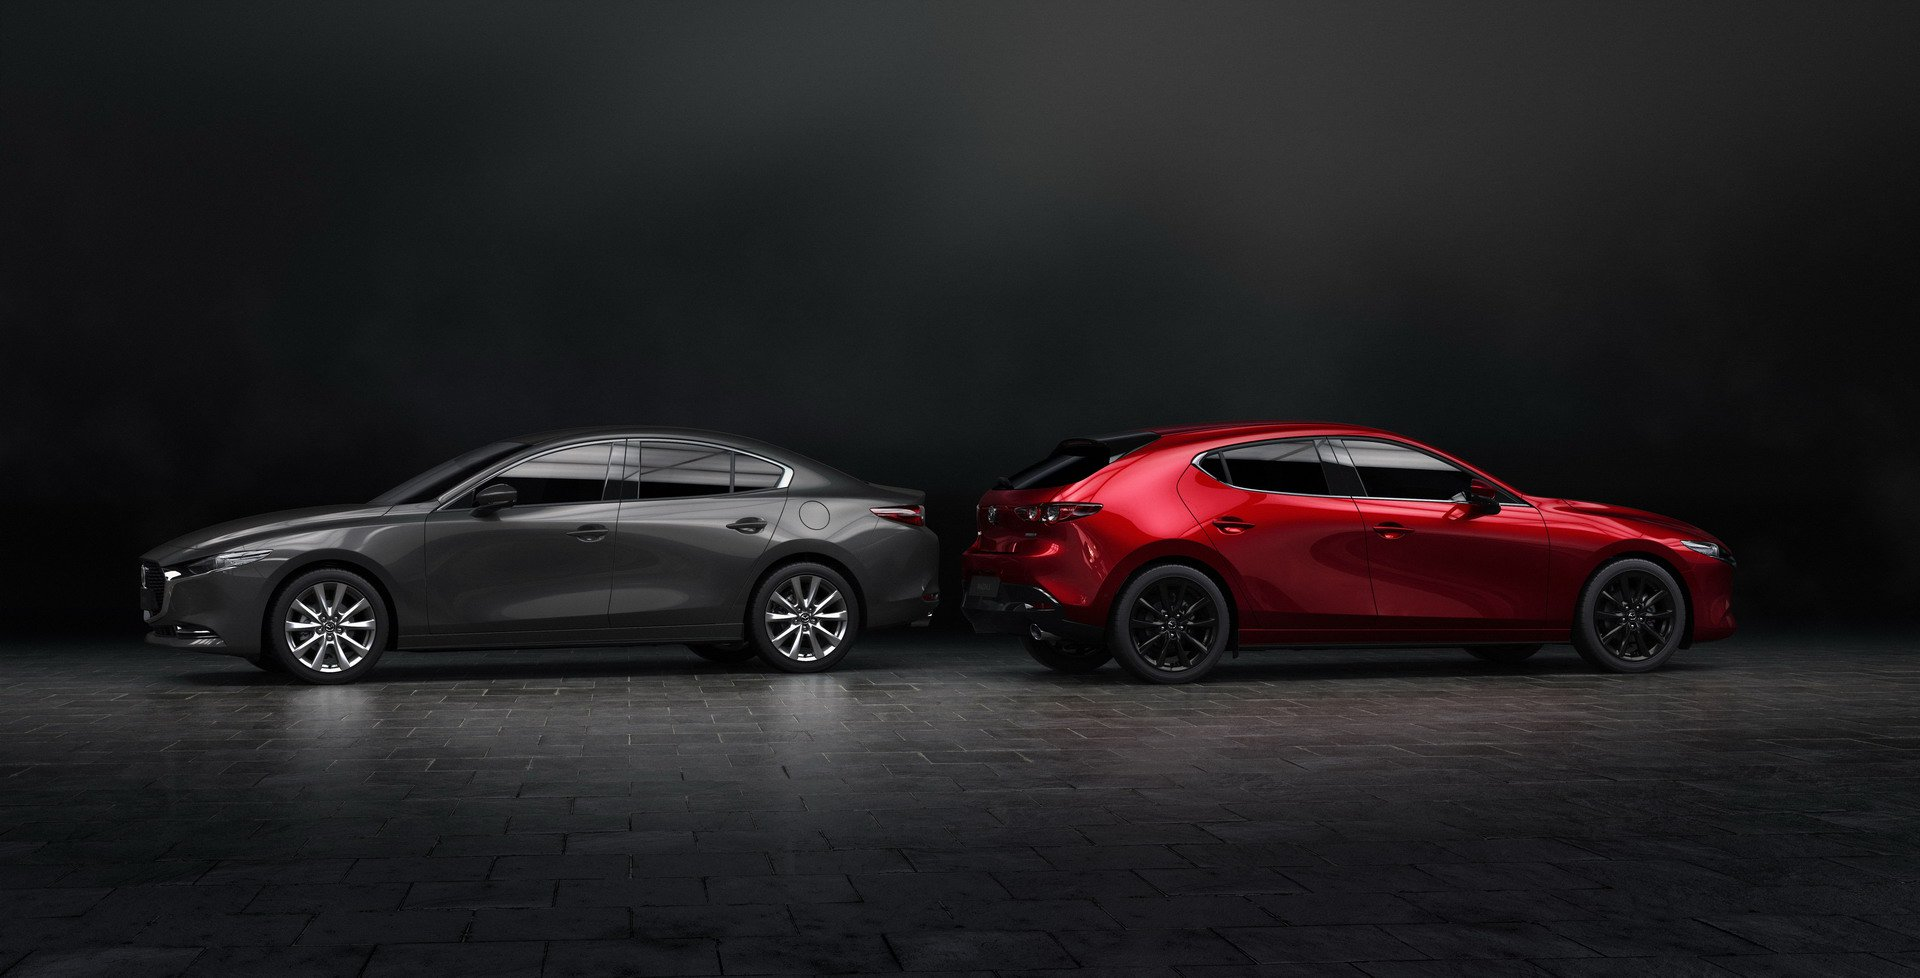 Mazda3 Hatchback and Mazda3 sedan 2019 (28)